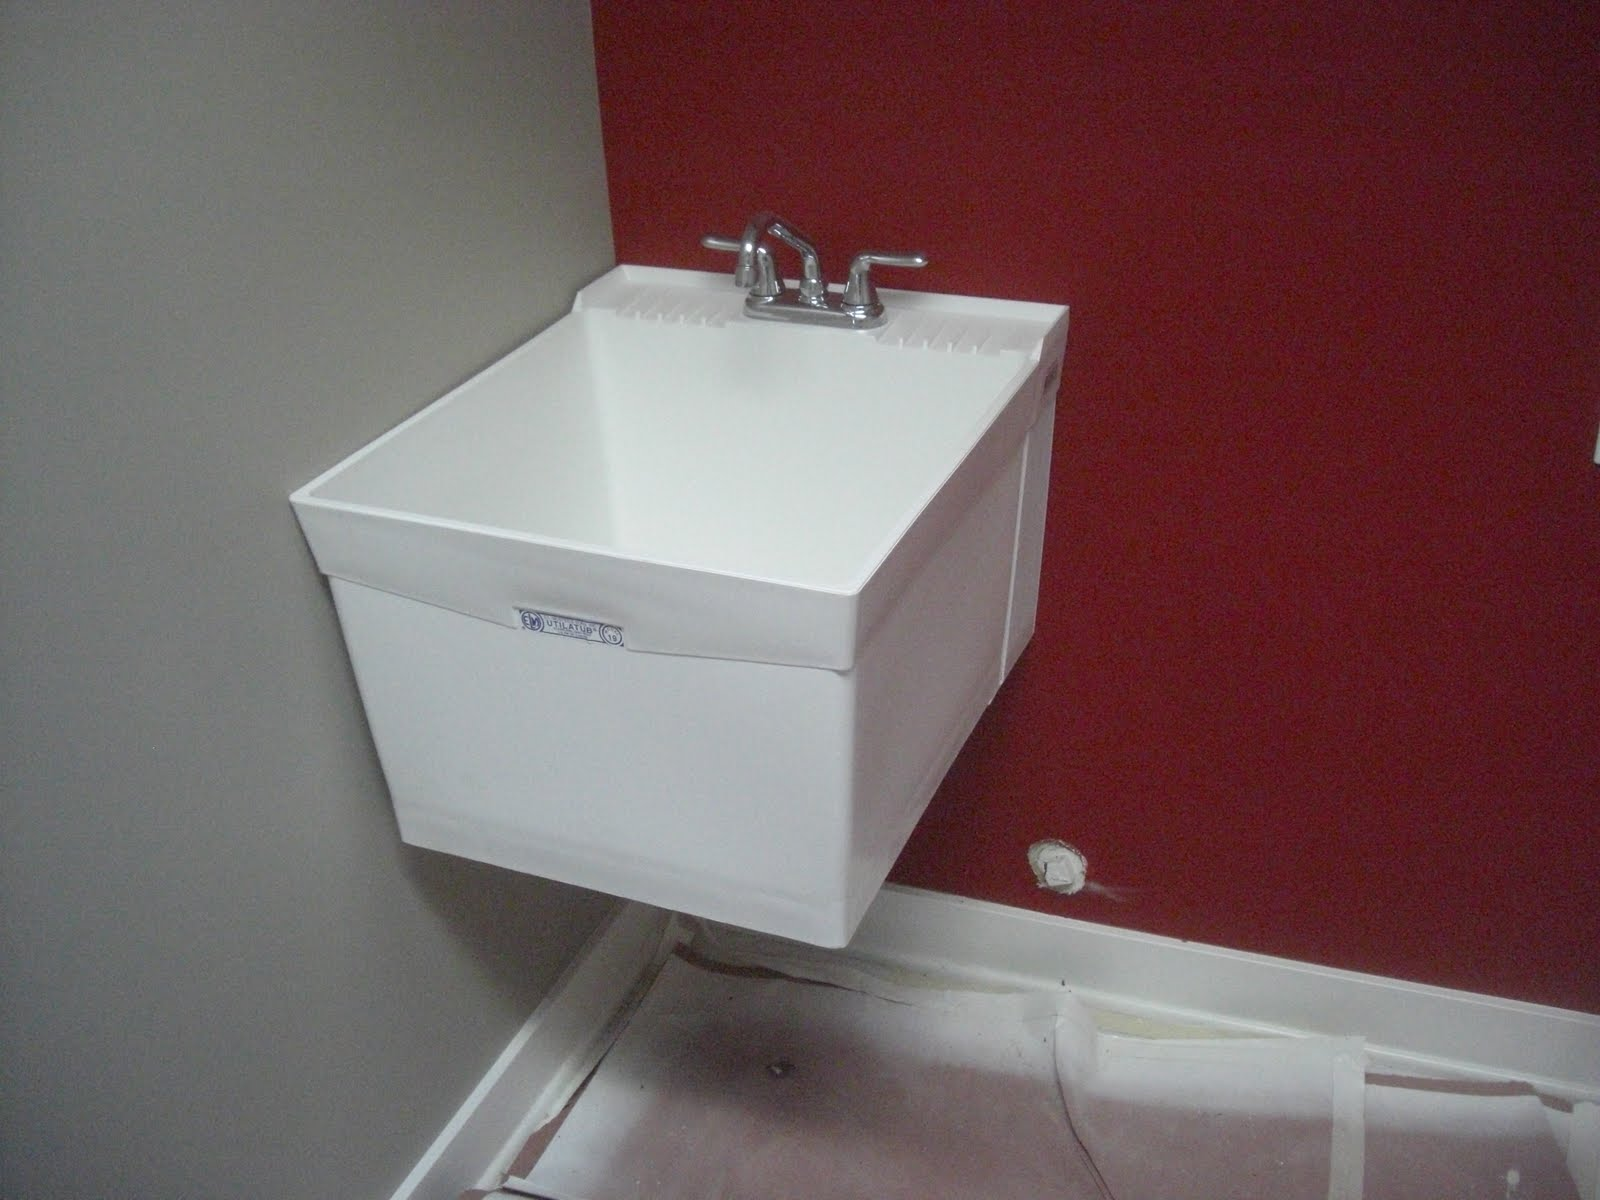 Here is the laundry washtub. It is wall mounted.